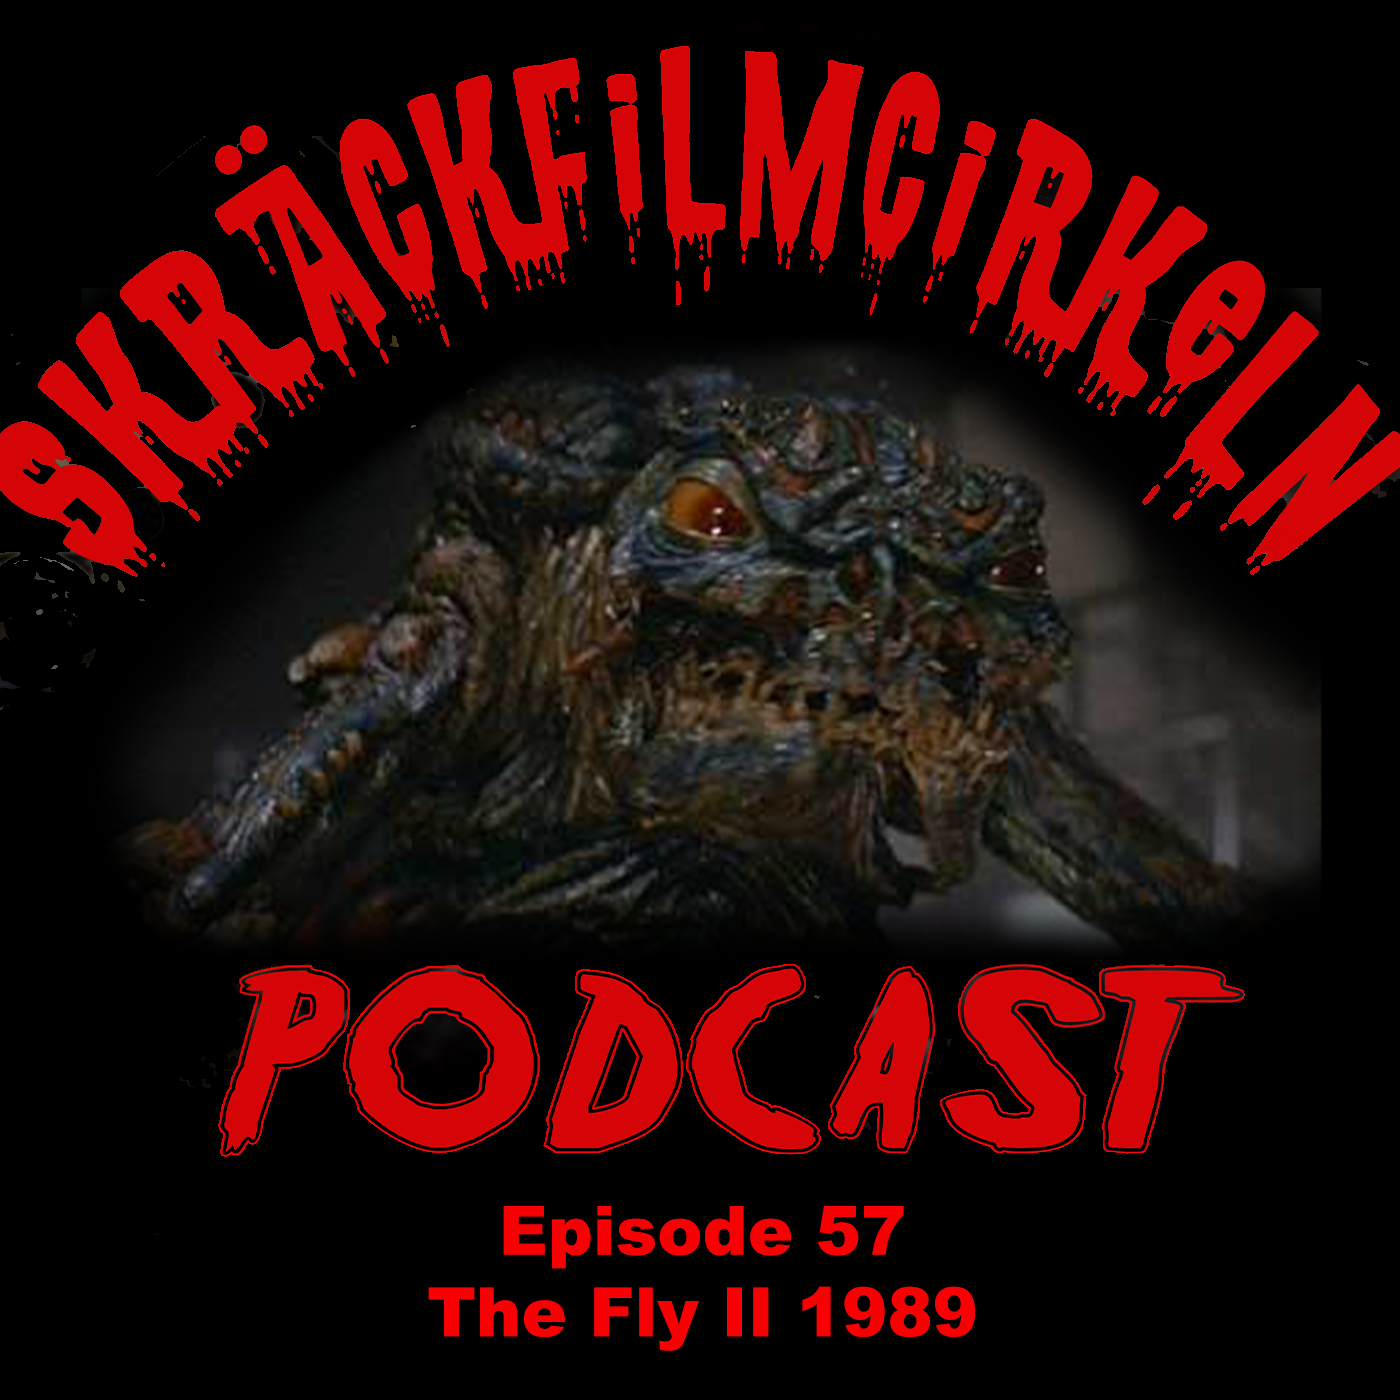 Episode 57 – Uppföljare – The Fly II (1989)